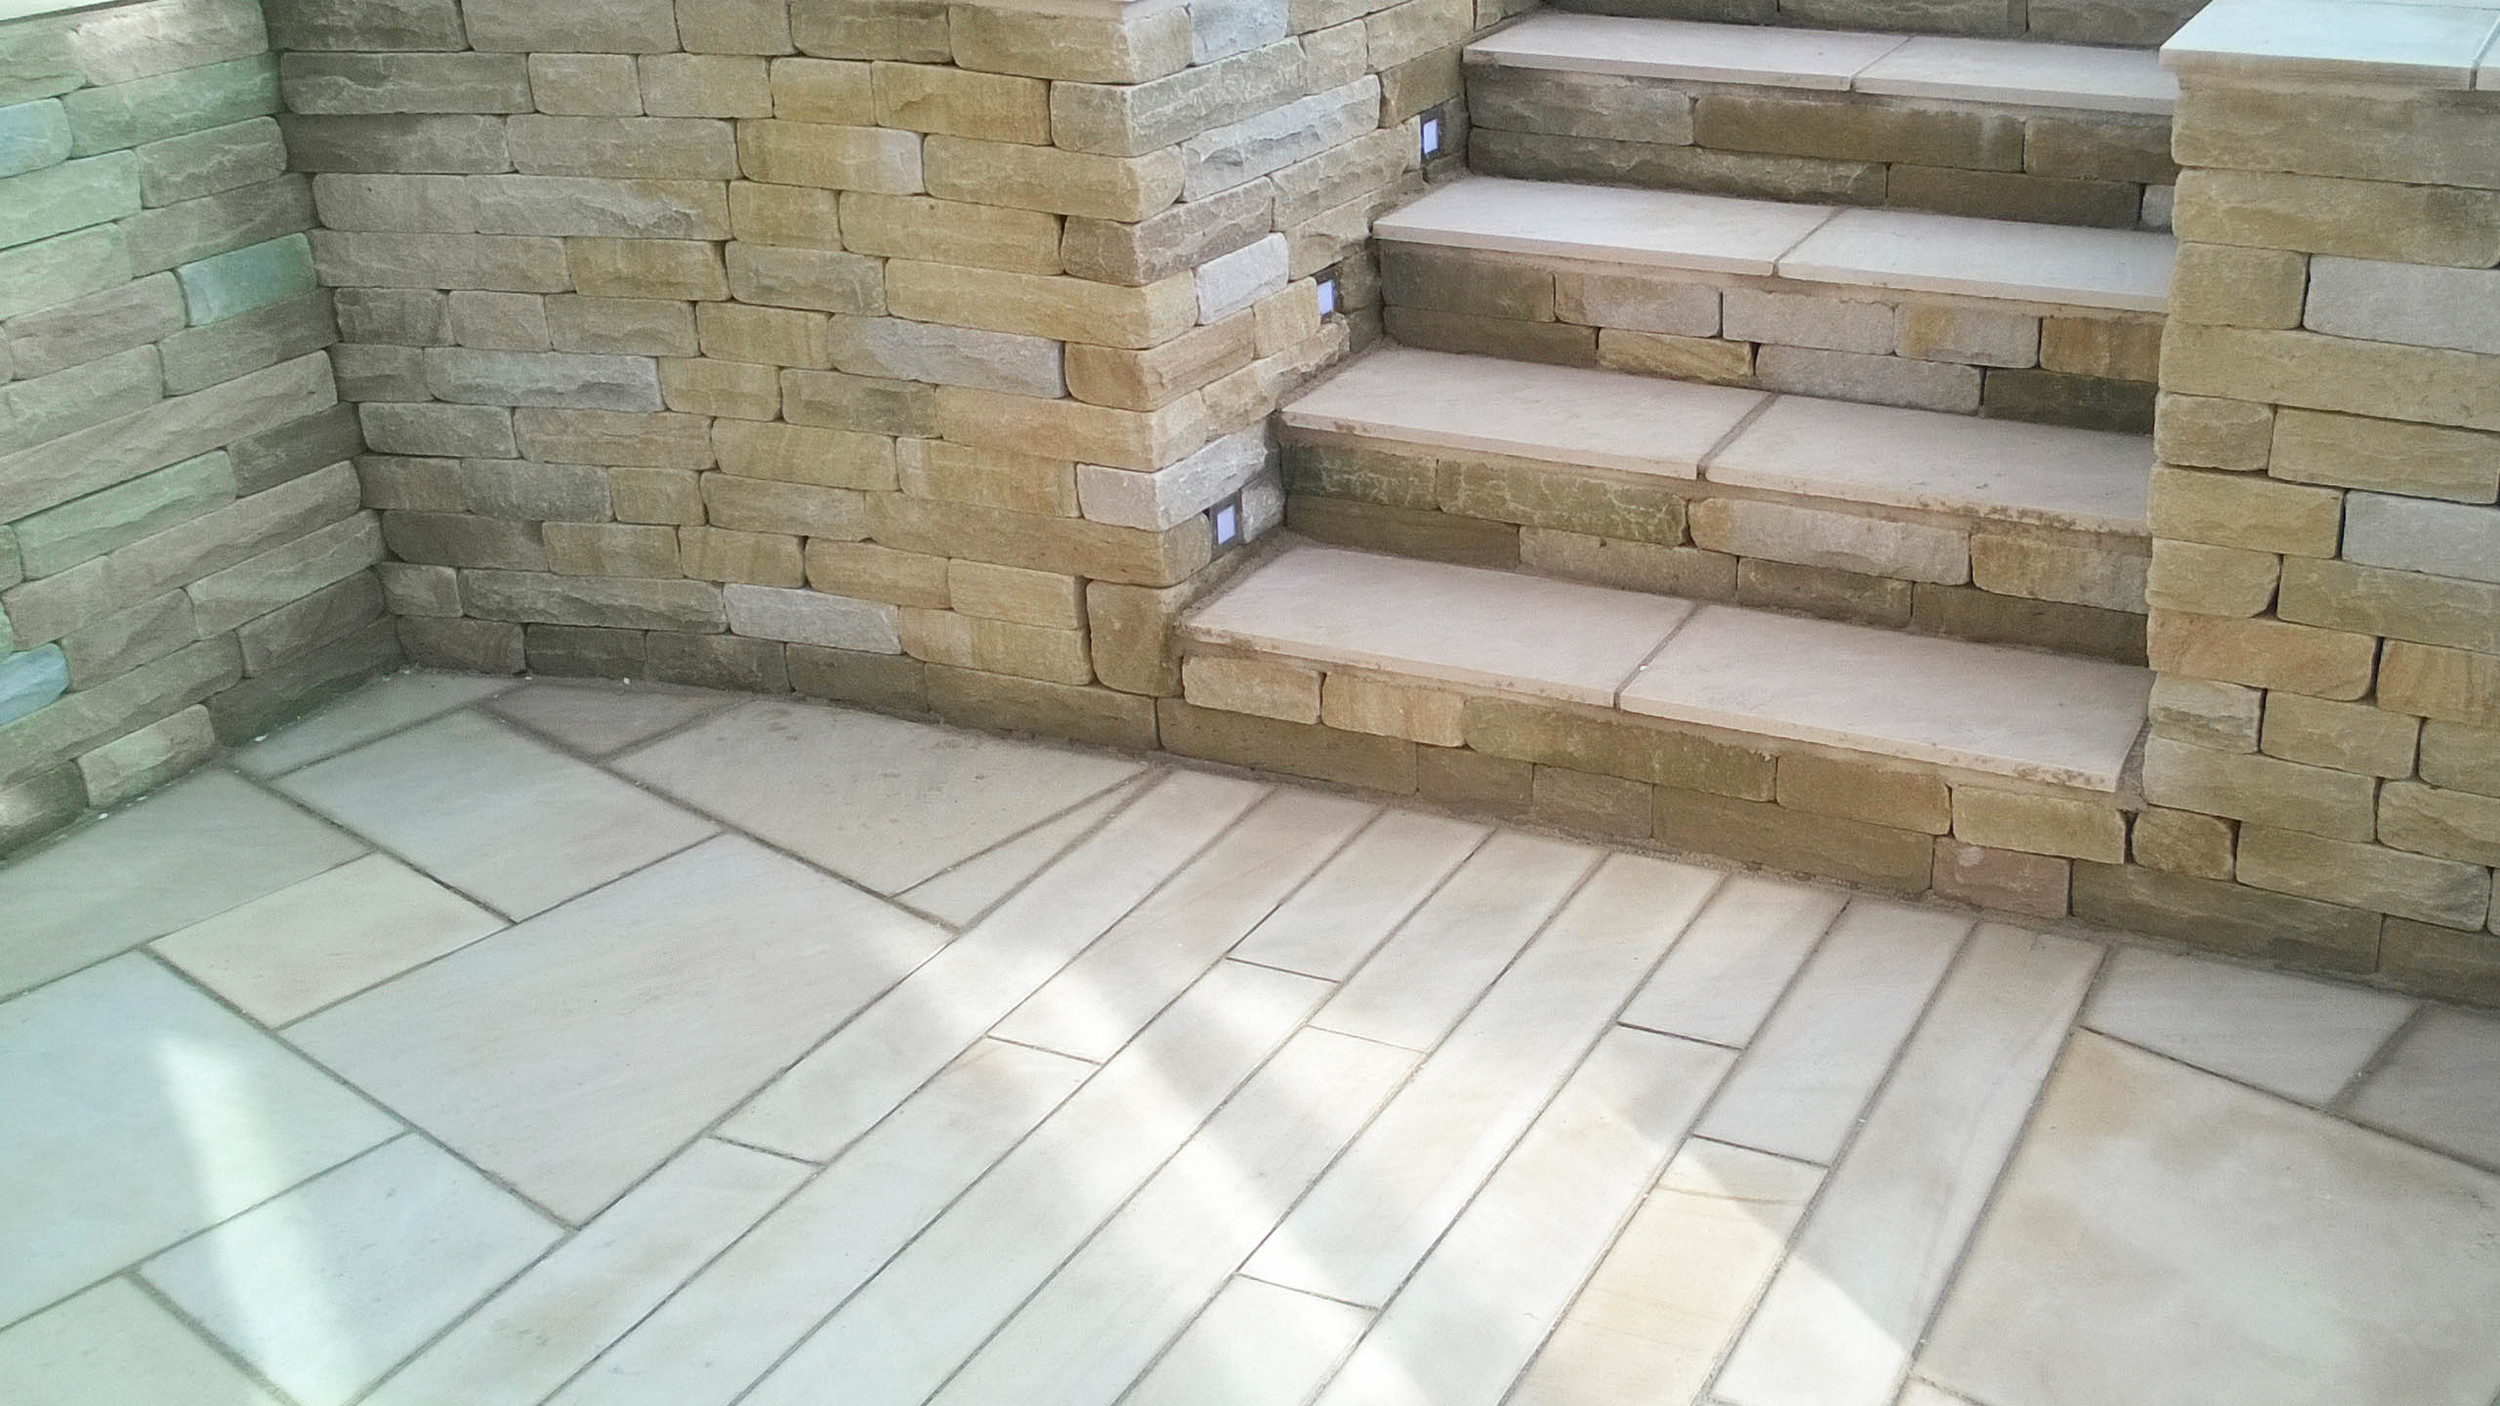 Cheshire Garden Design: Sawn Stone Steps with dressed stone wall.